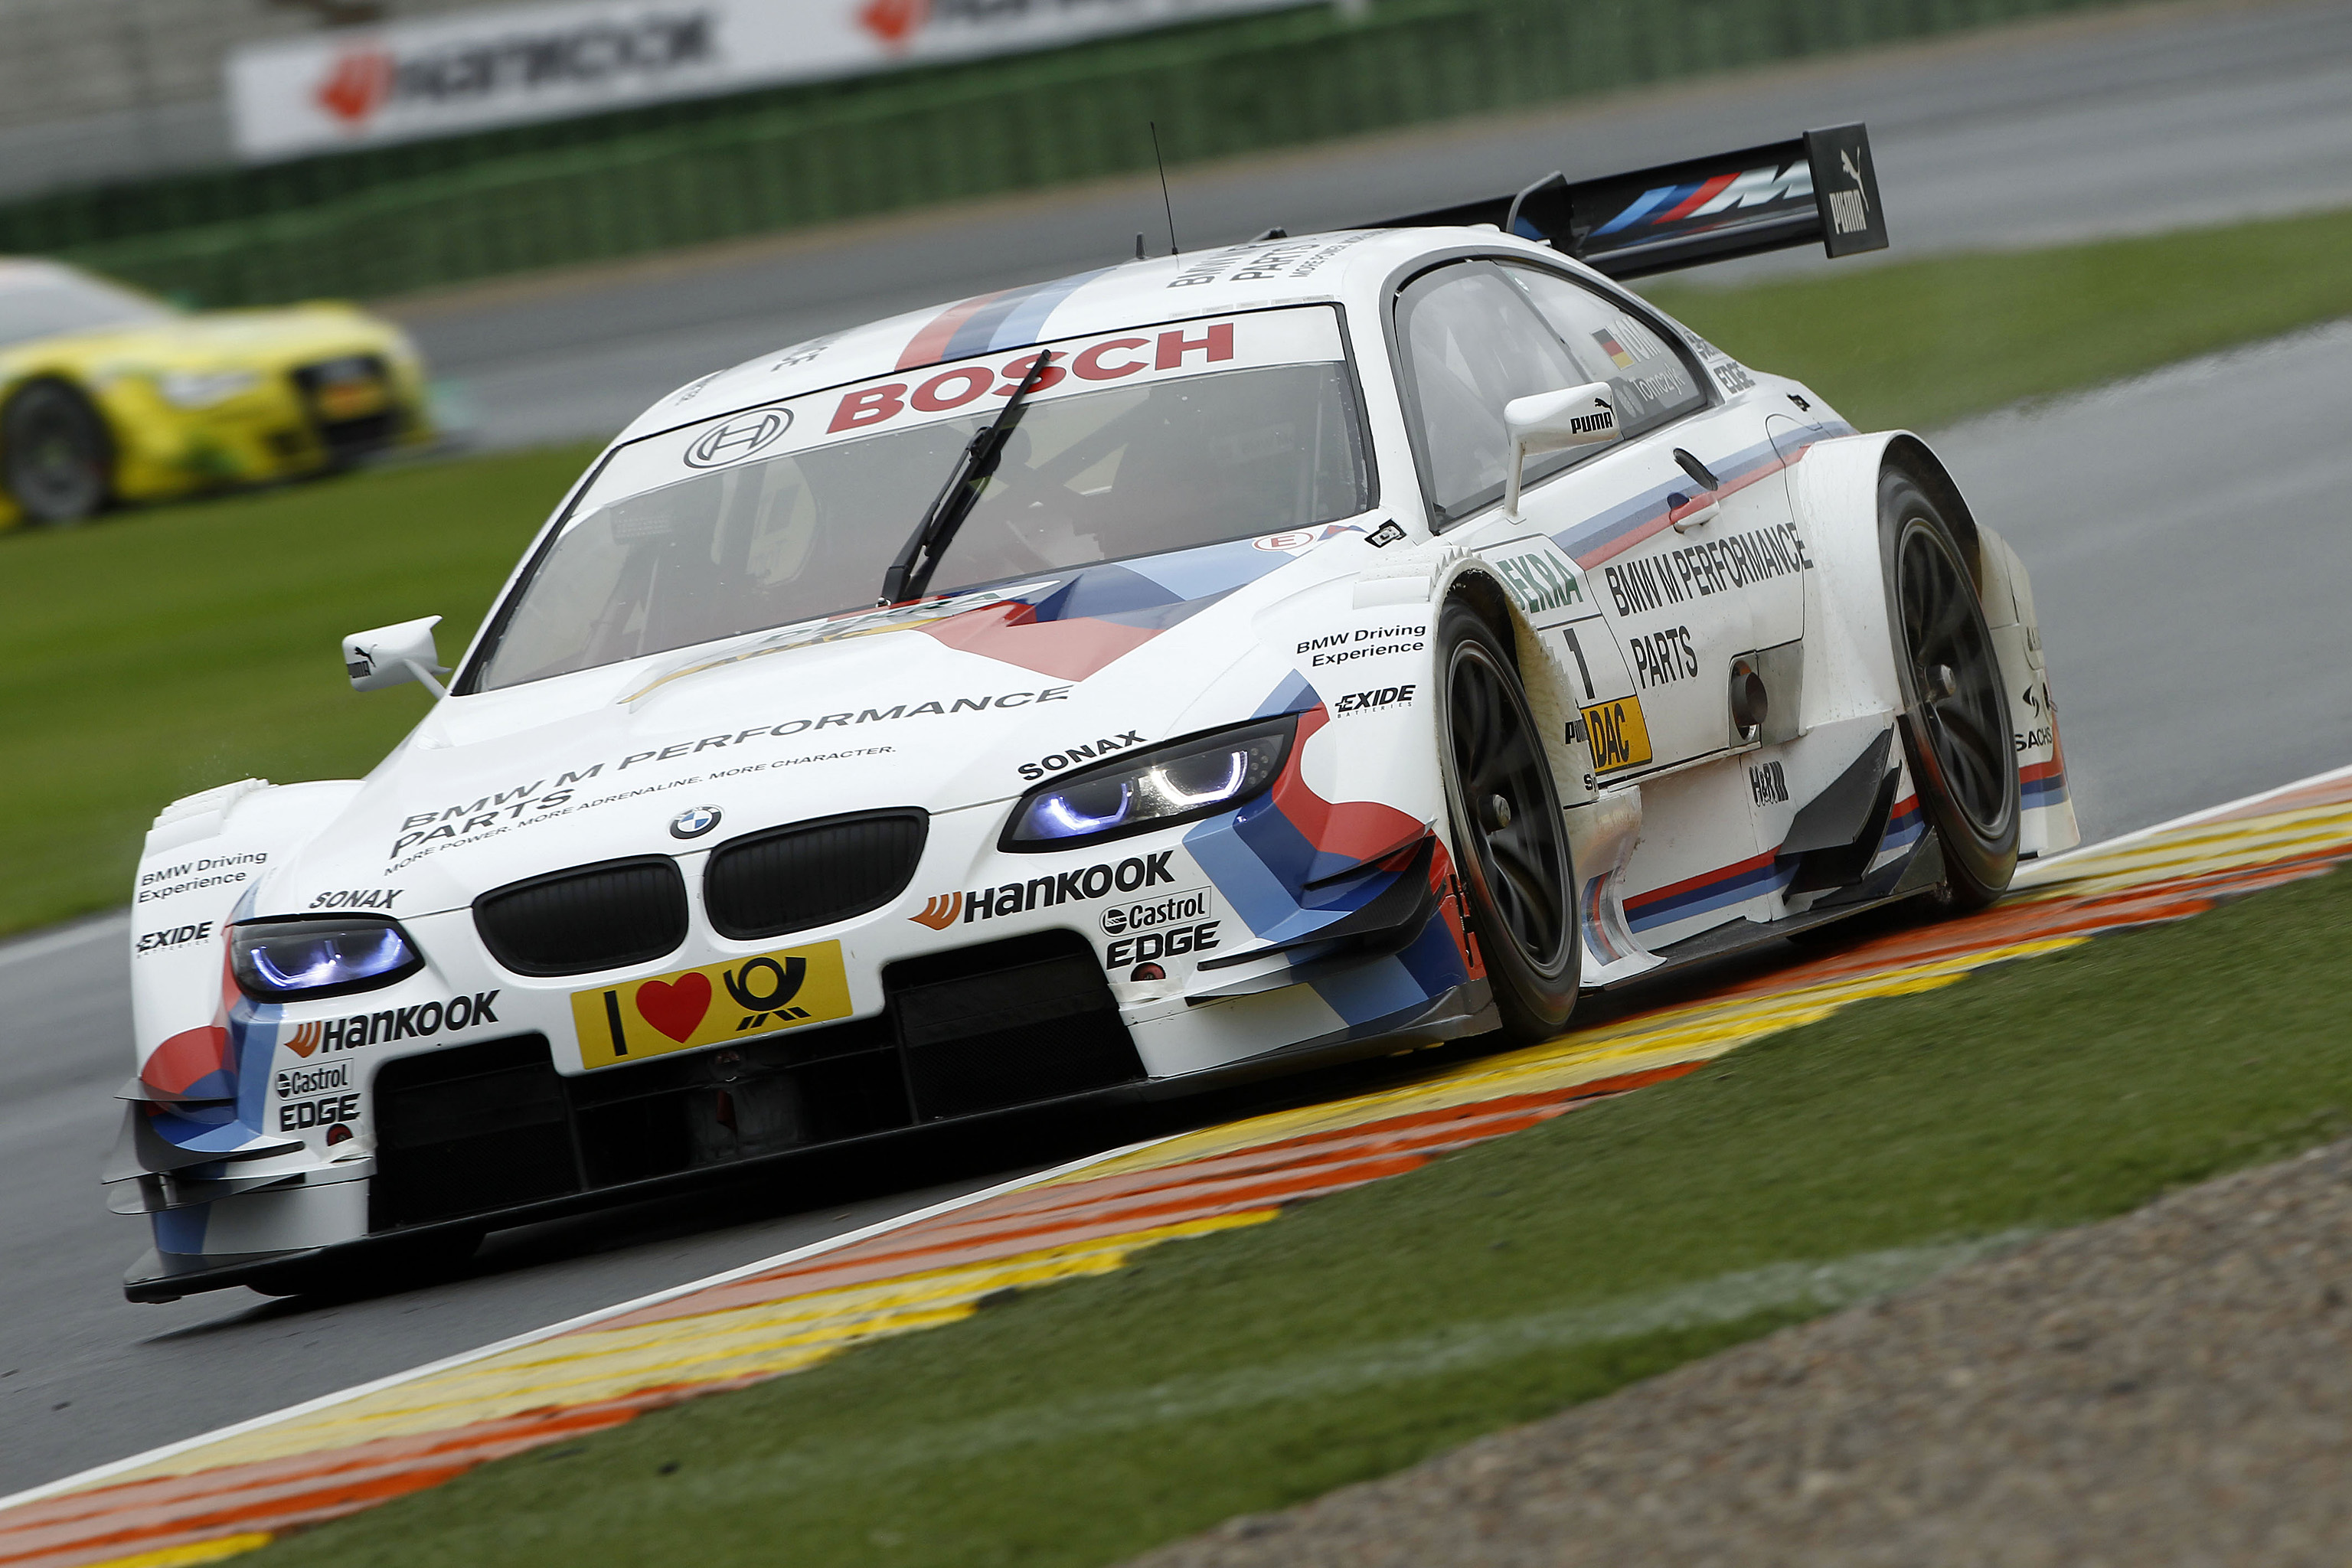 #1, Martin Tomczyk (BMW Team RMG, BMW M Performance Zubehoer BMW M3 DTM (2012))